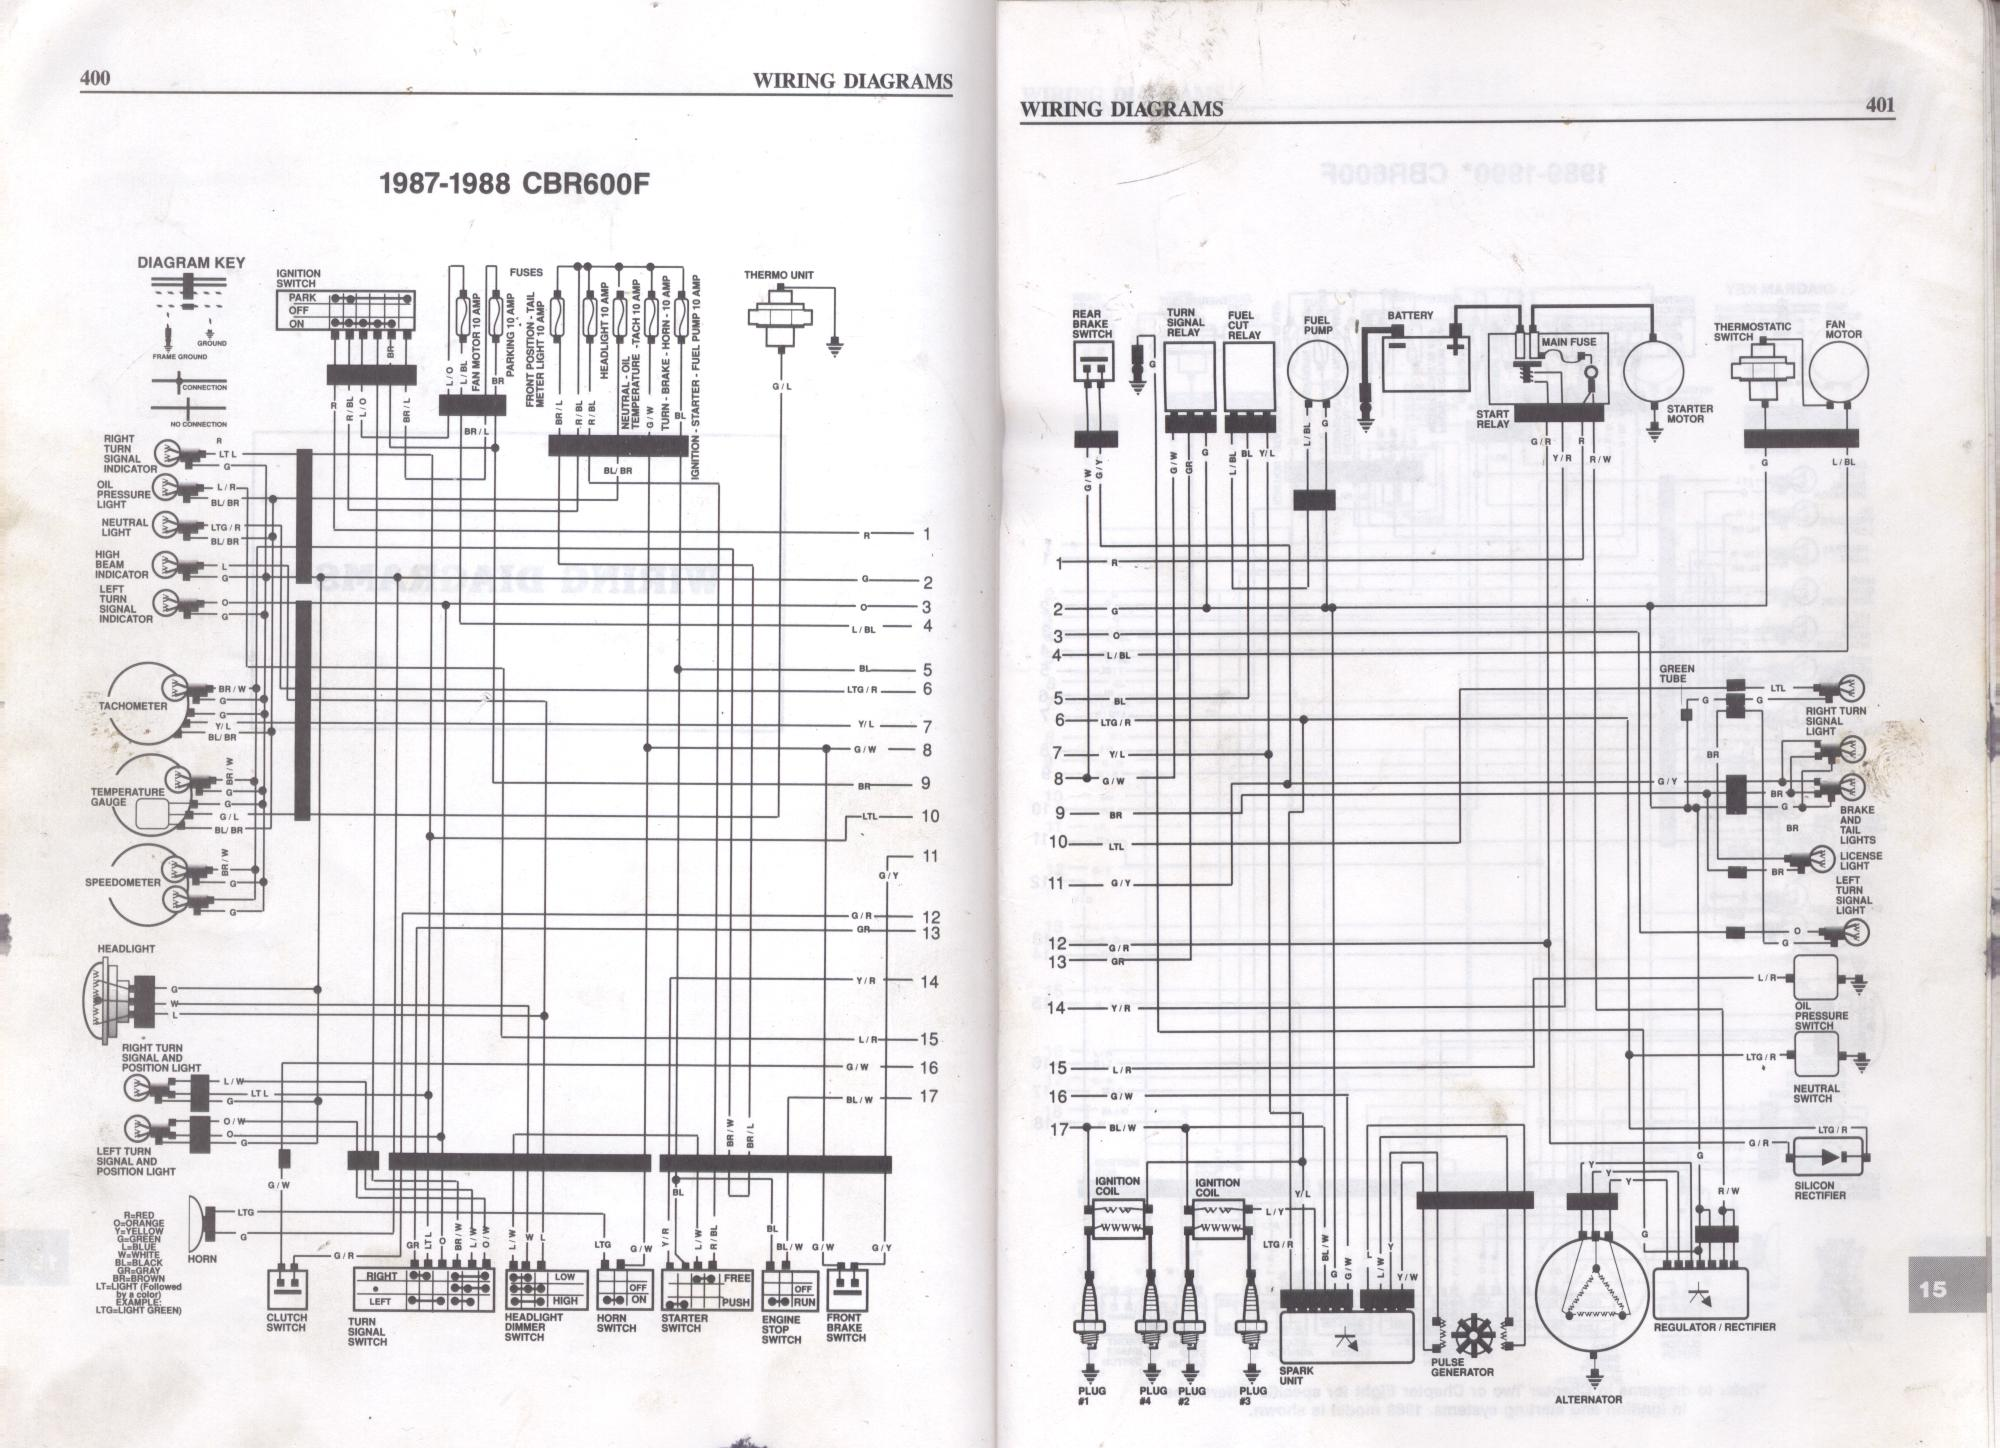 1987 1988 Honda CBR600F Wiring Diagrams index of images 0 0e 1987 honda xl600r wiring diagram at gsmx.co